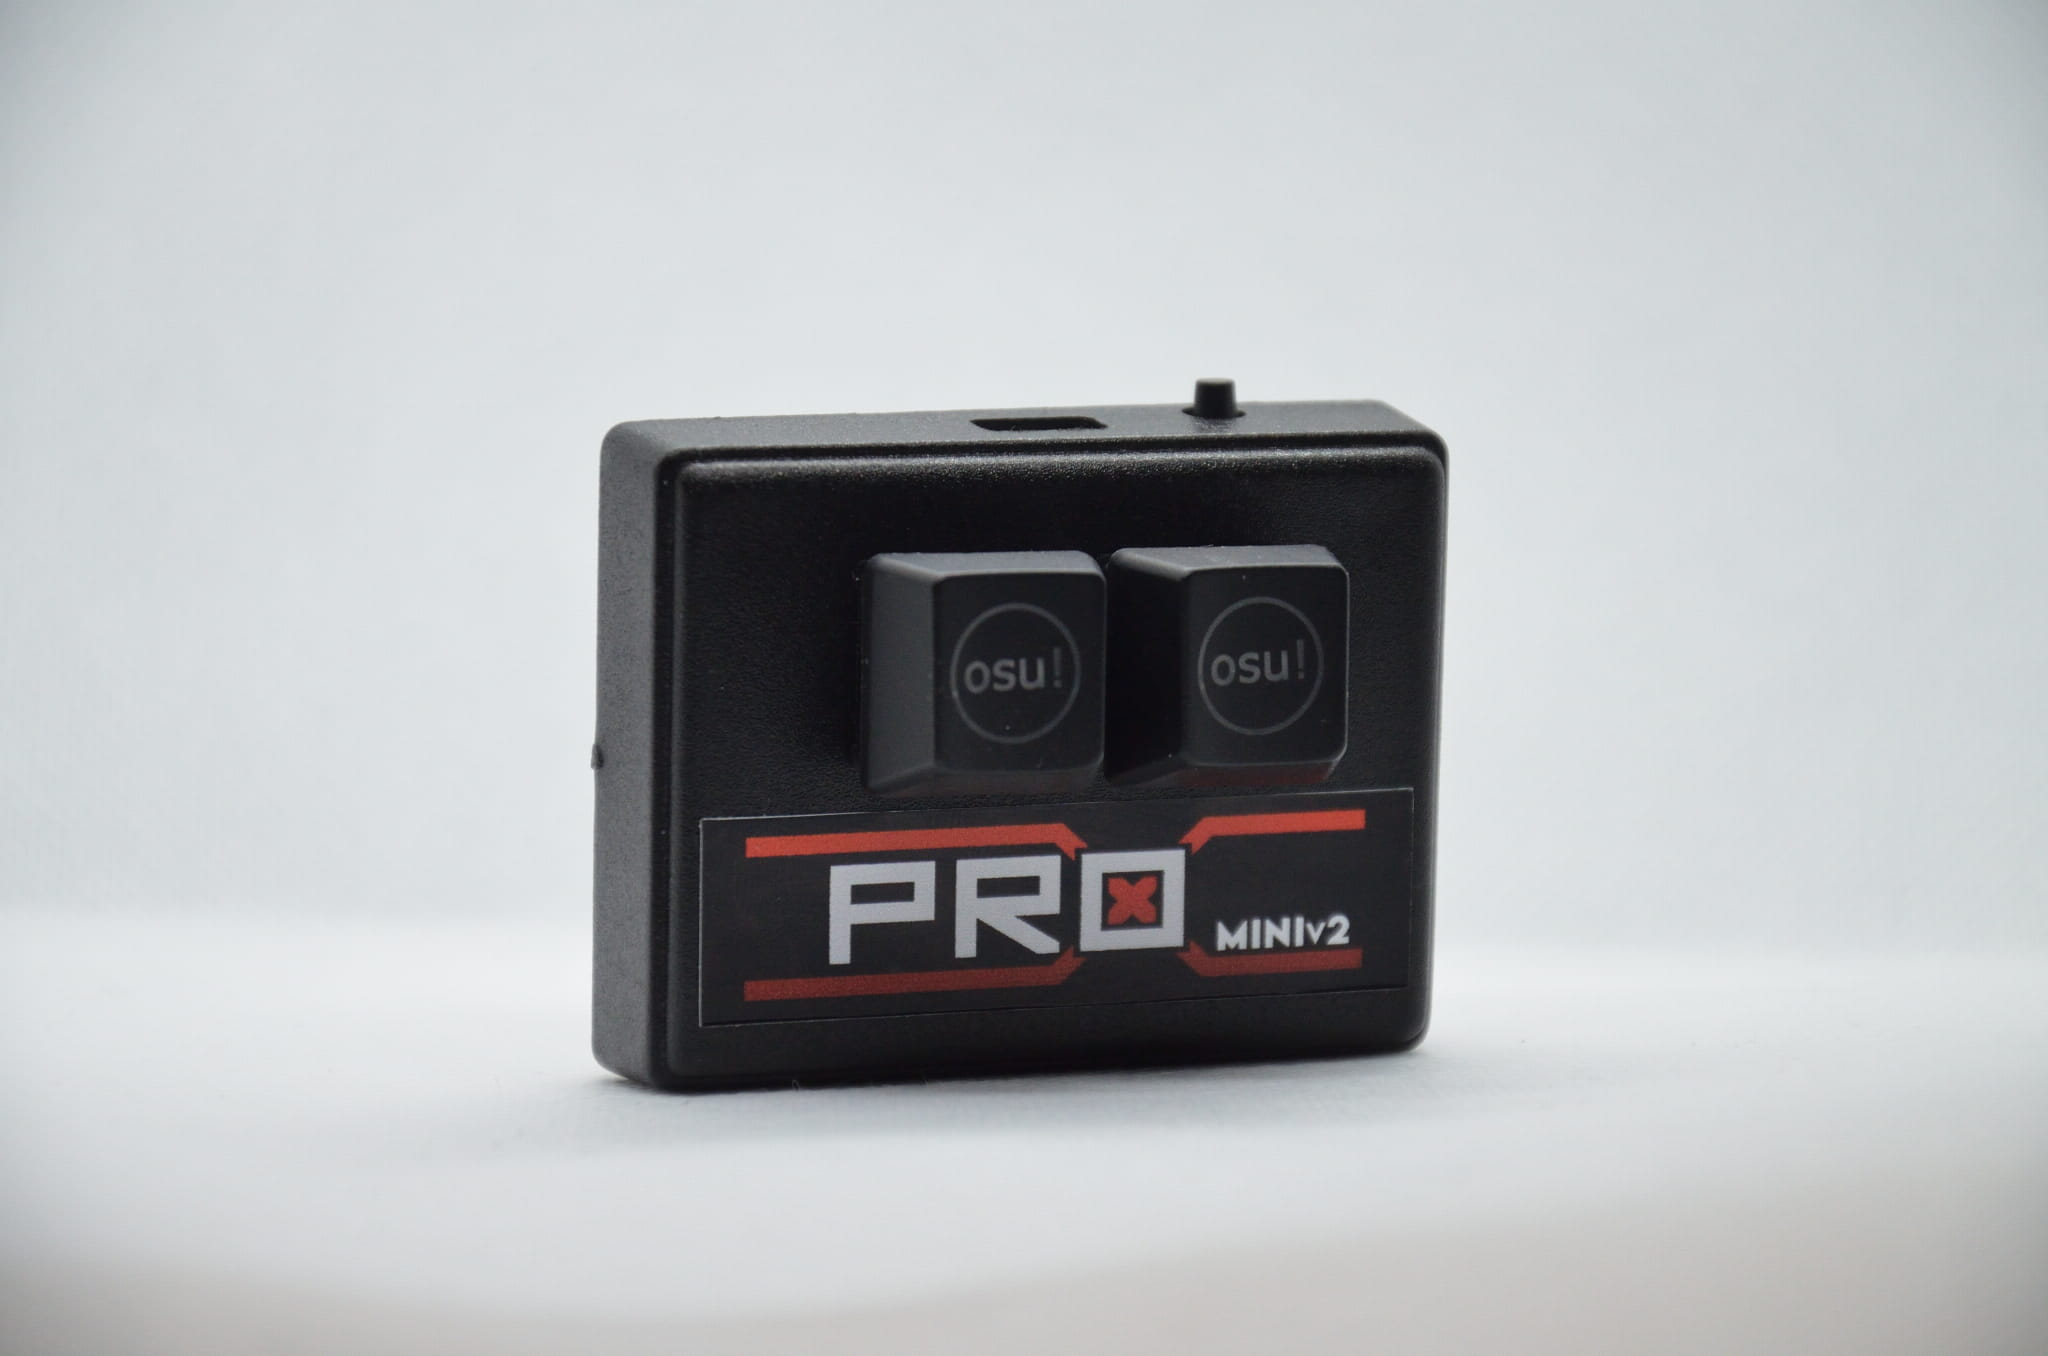 PRO X Mini v2 - a mini mechanical keypad for osu! with backlit